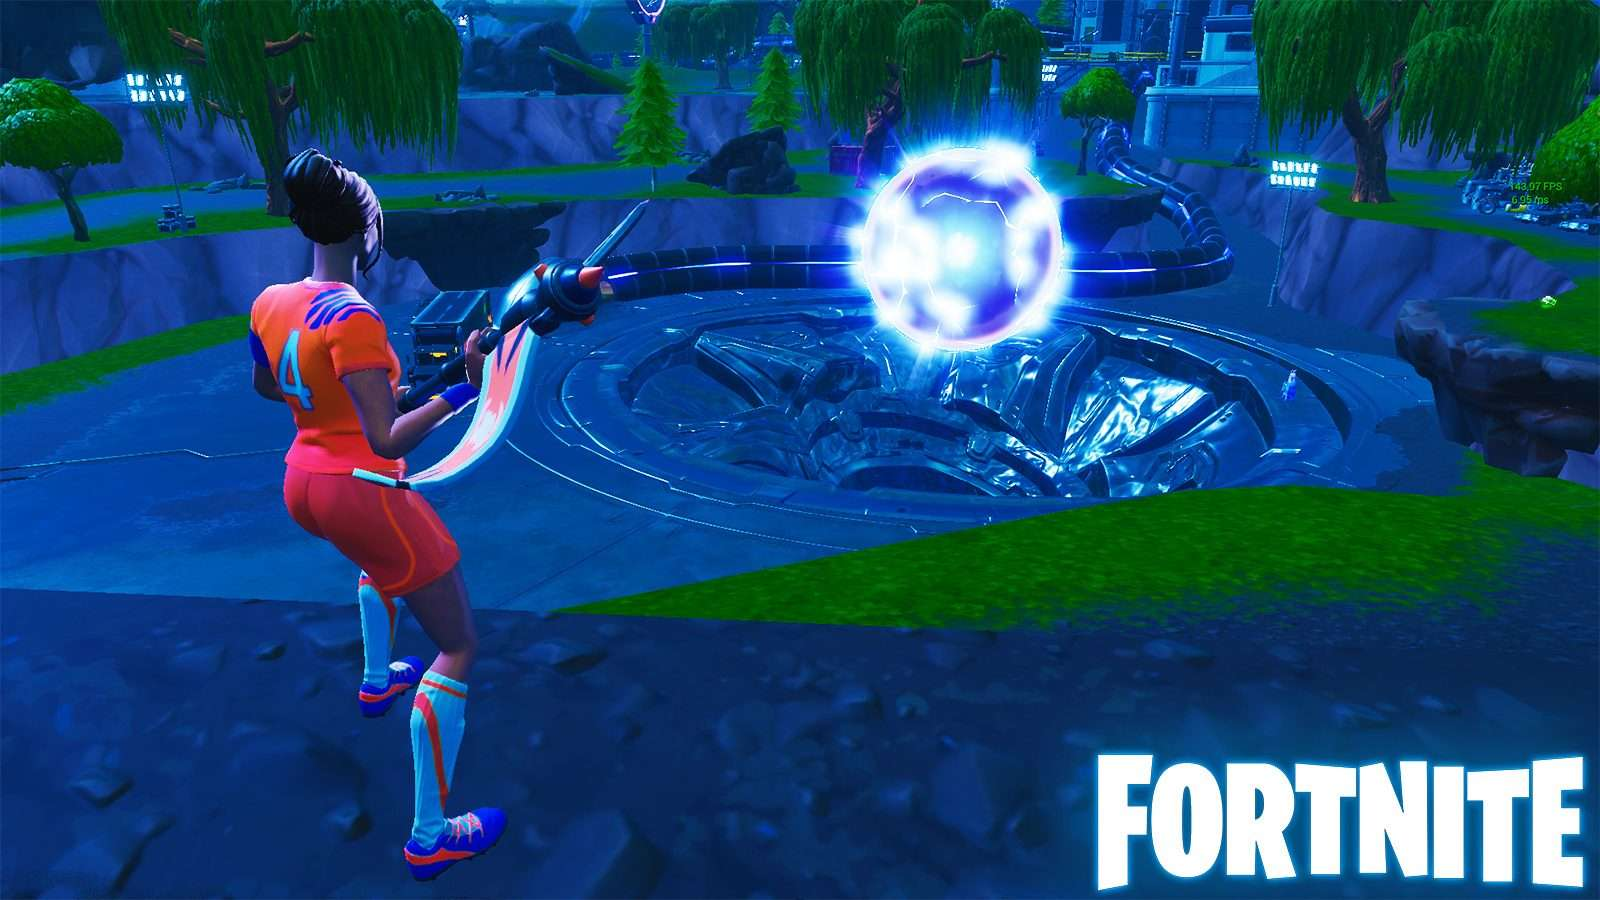 Fortnite Season 10: Start date, map changes and rumored